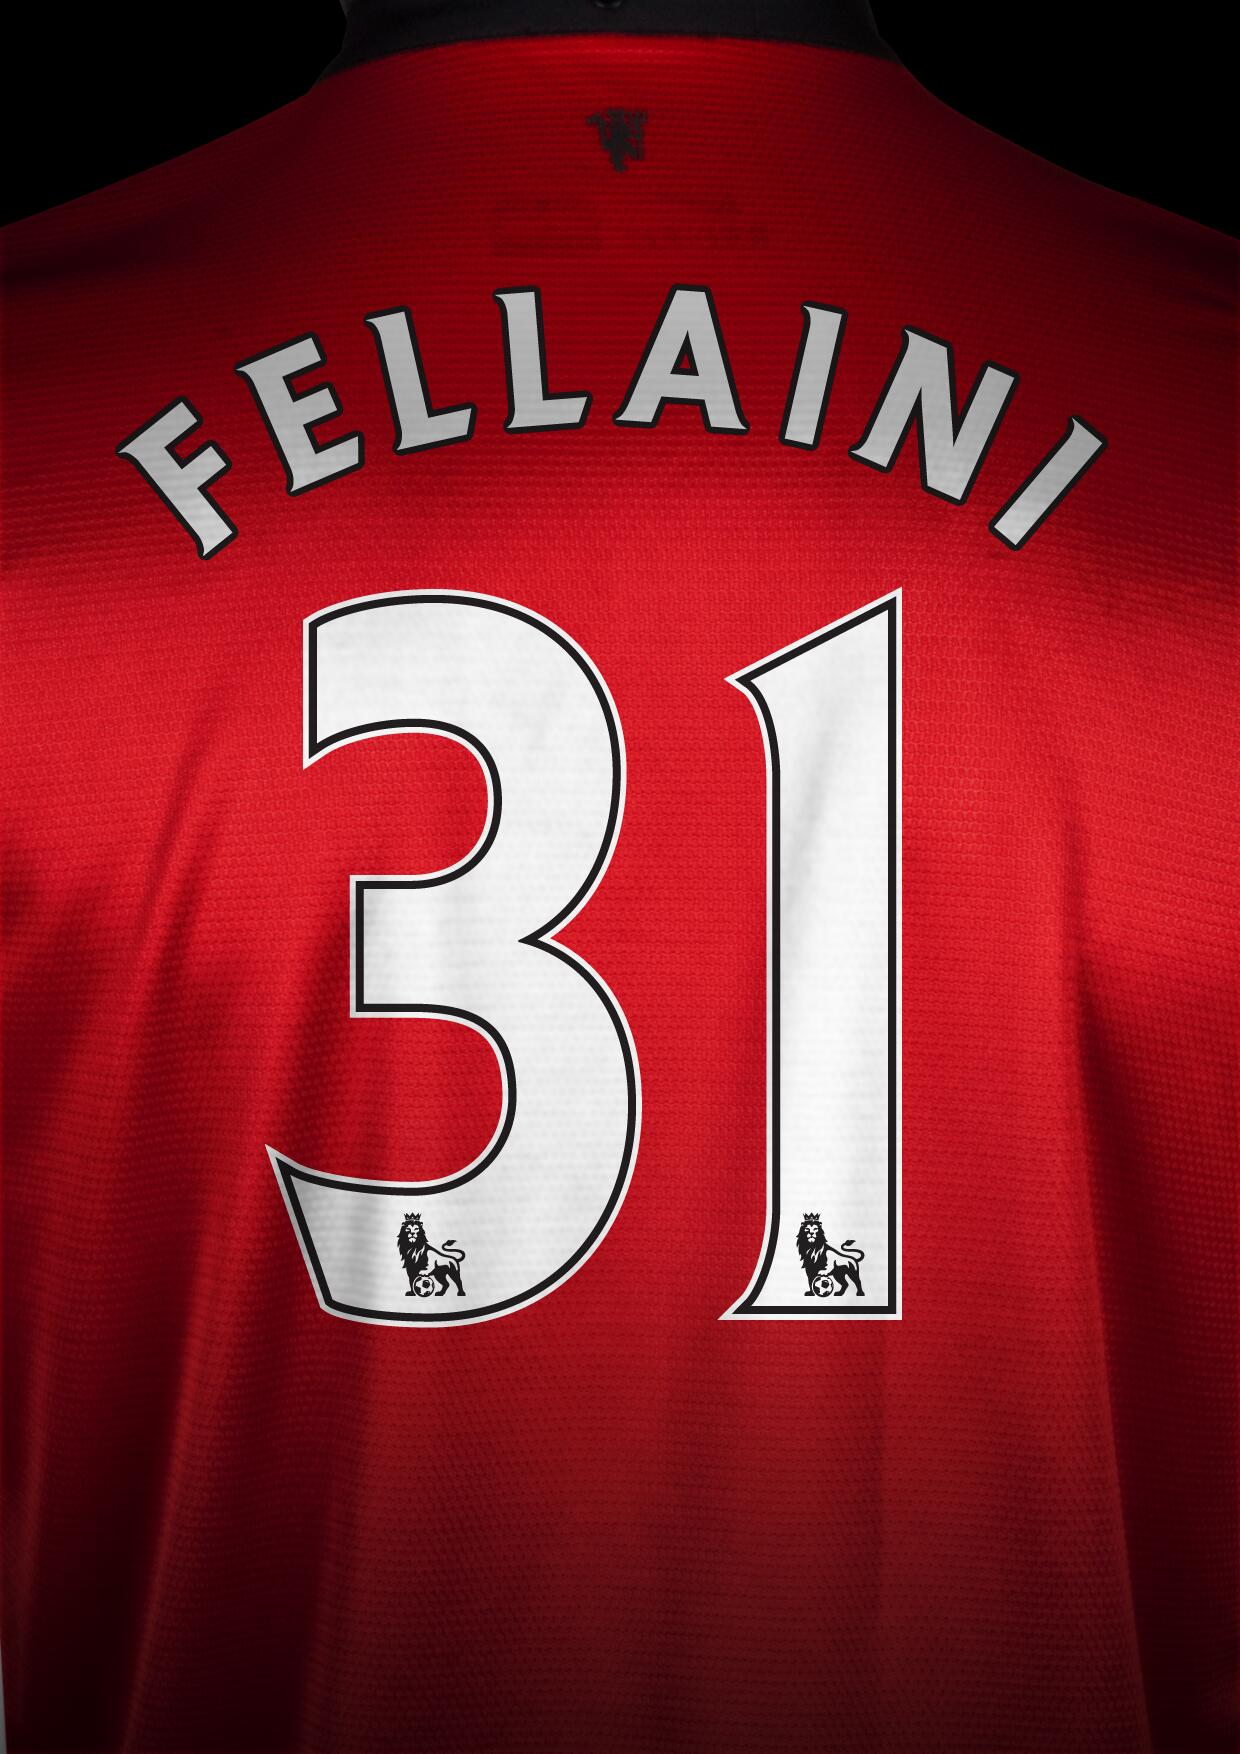 Marouane Fellaini will wear No.31 at Manchester United - so the No.7 shirt remains vacant. http://t.co/tP3pa1PKOF #MUFC (via @ManUtd)